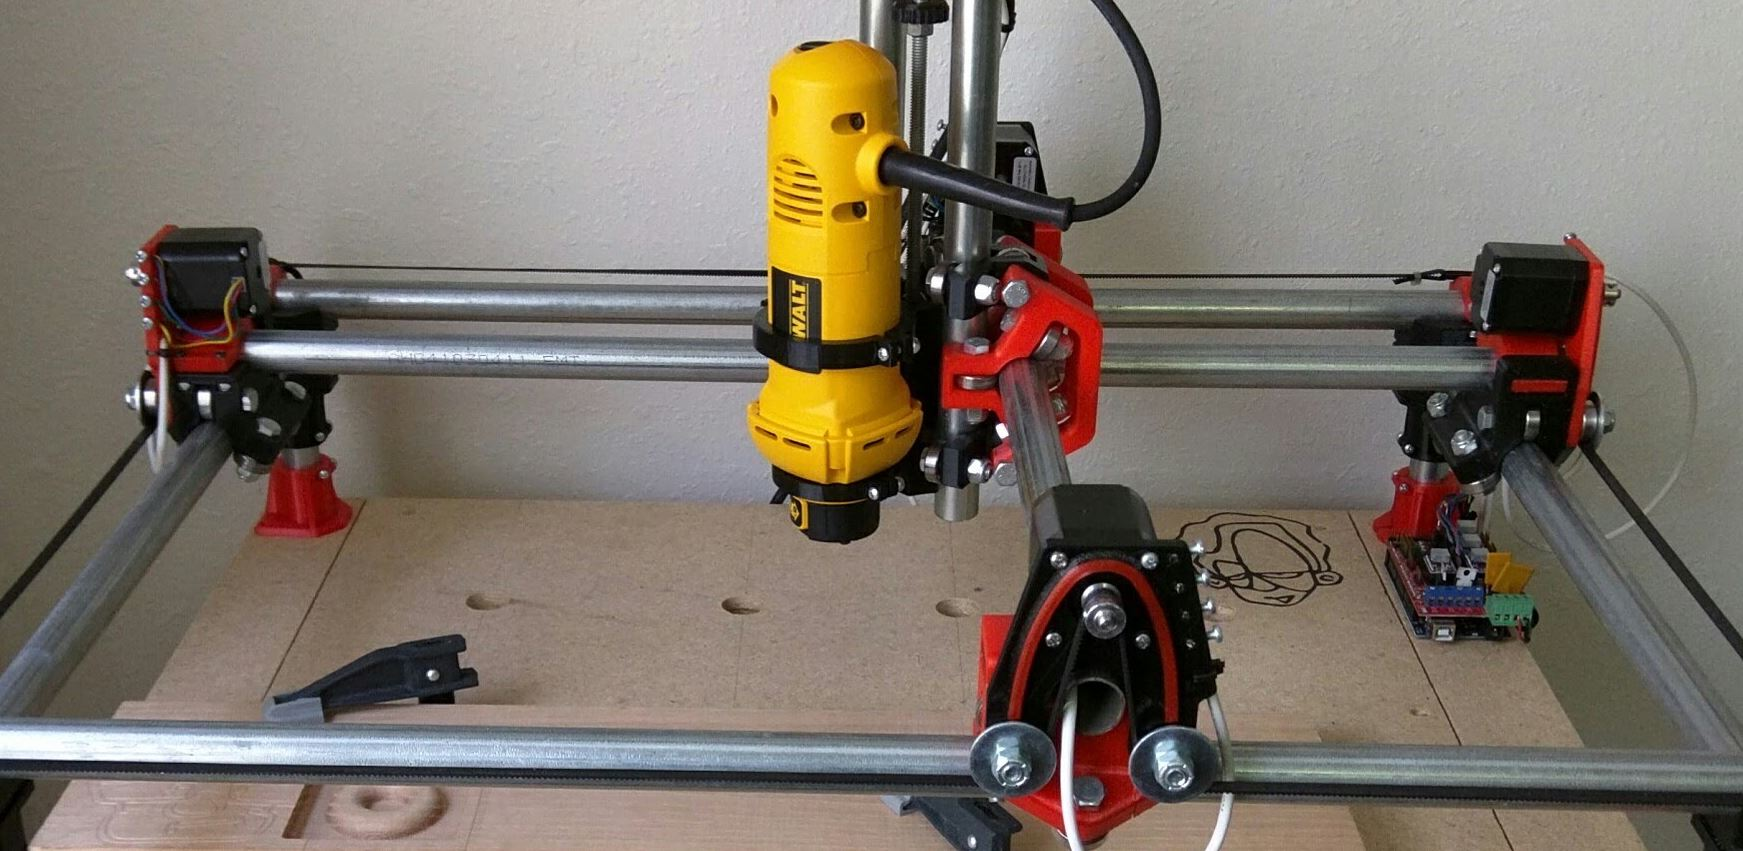 Mostly Printed CNC and others – 4 Minutes Ago